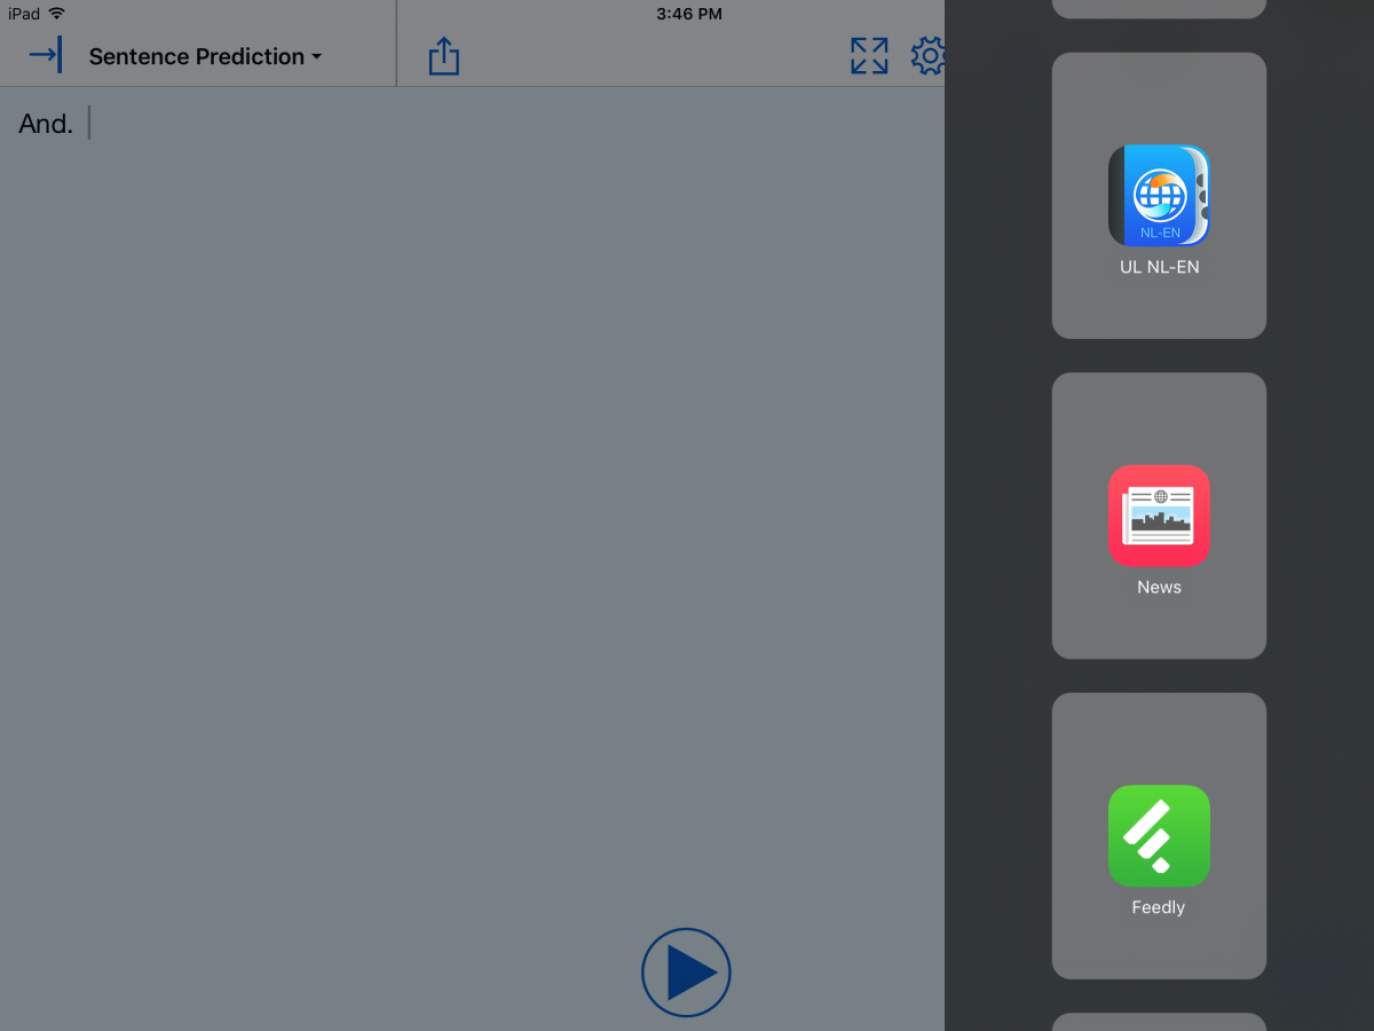 iOS split screen with a list of apps on the right side